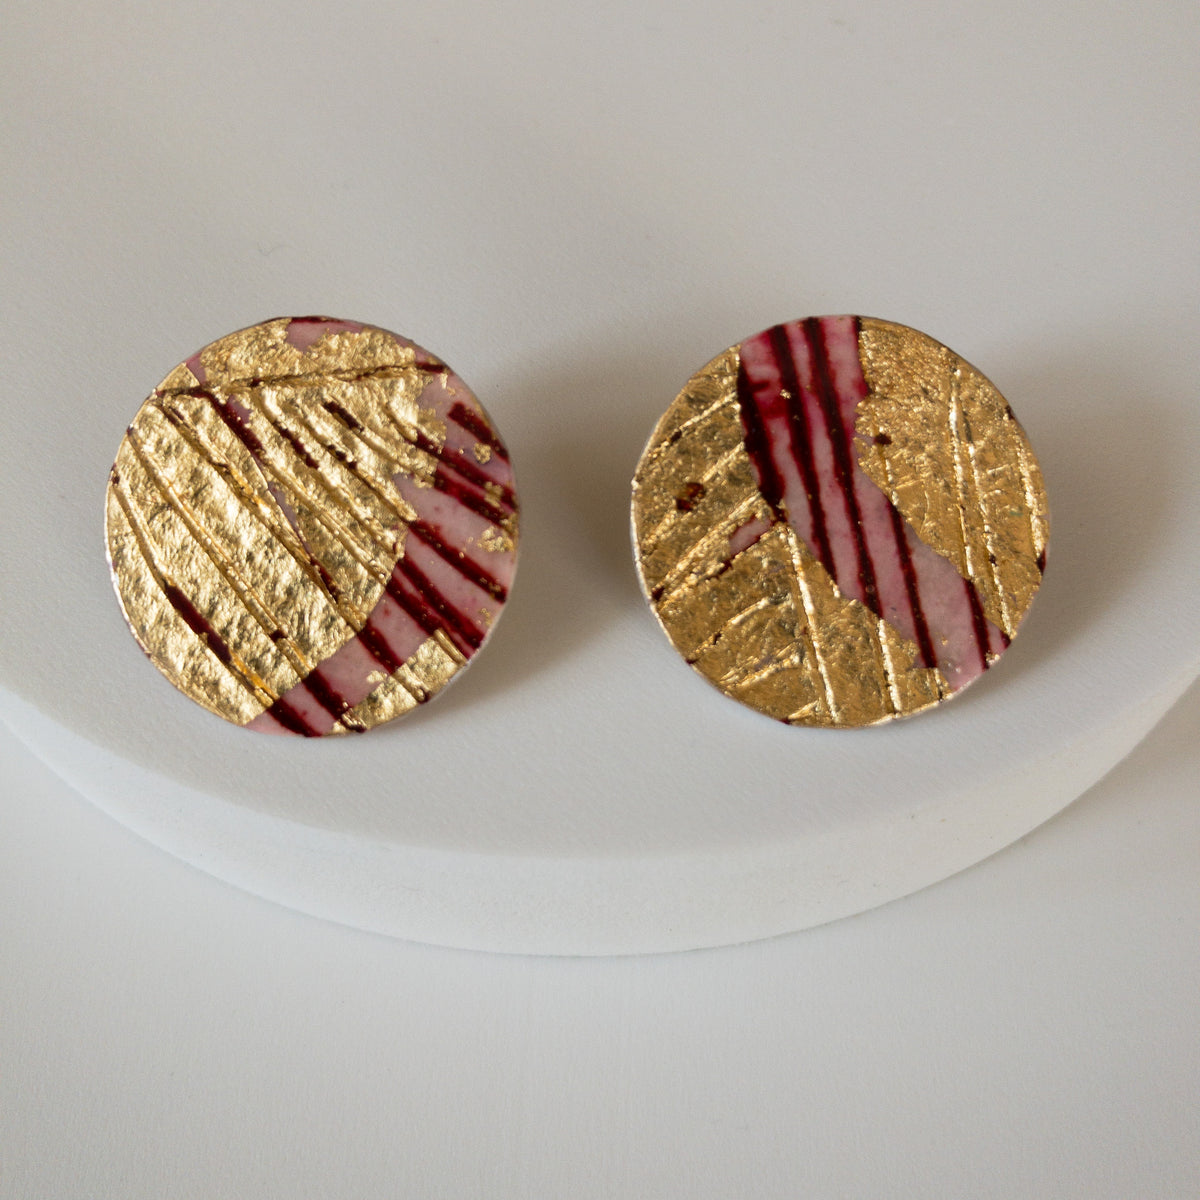 Ró sgraffito earrings in red/gold